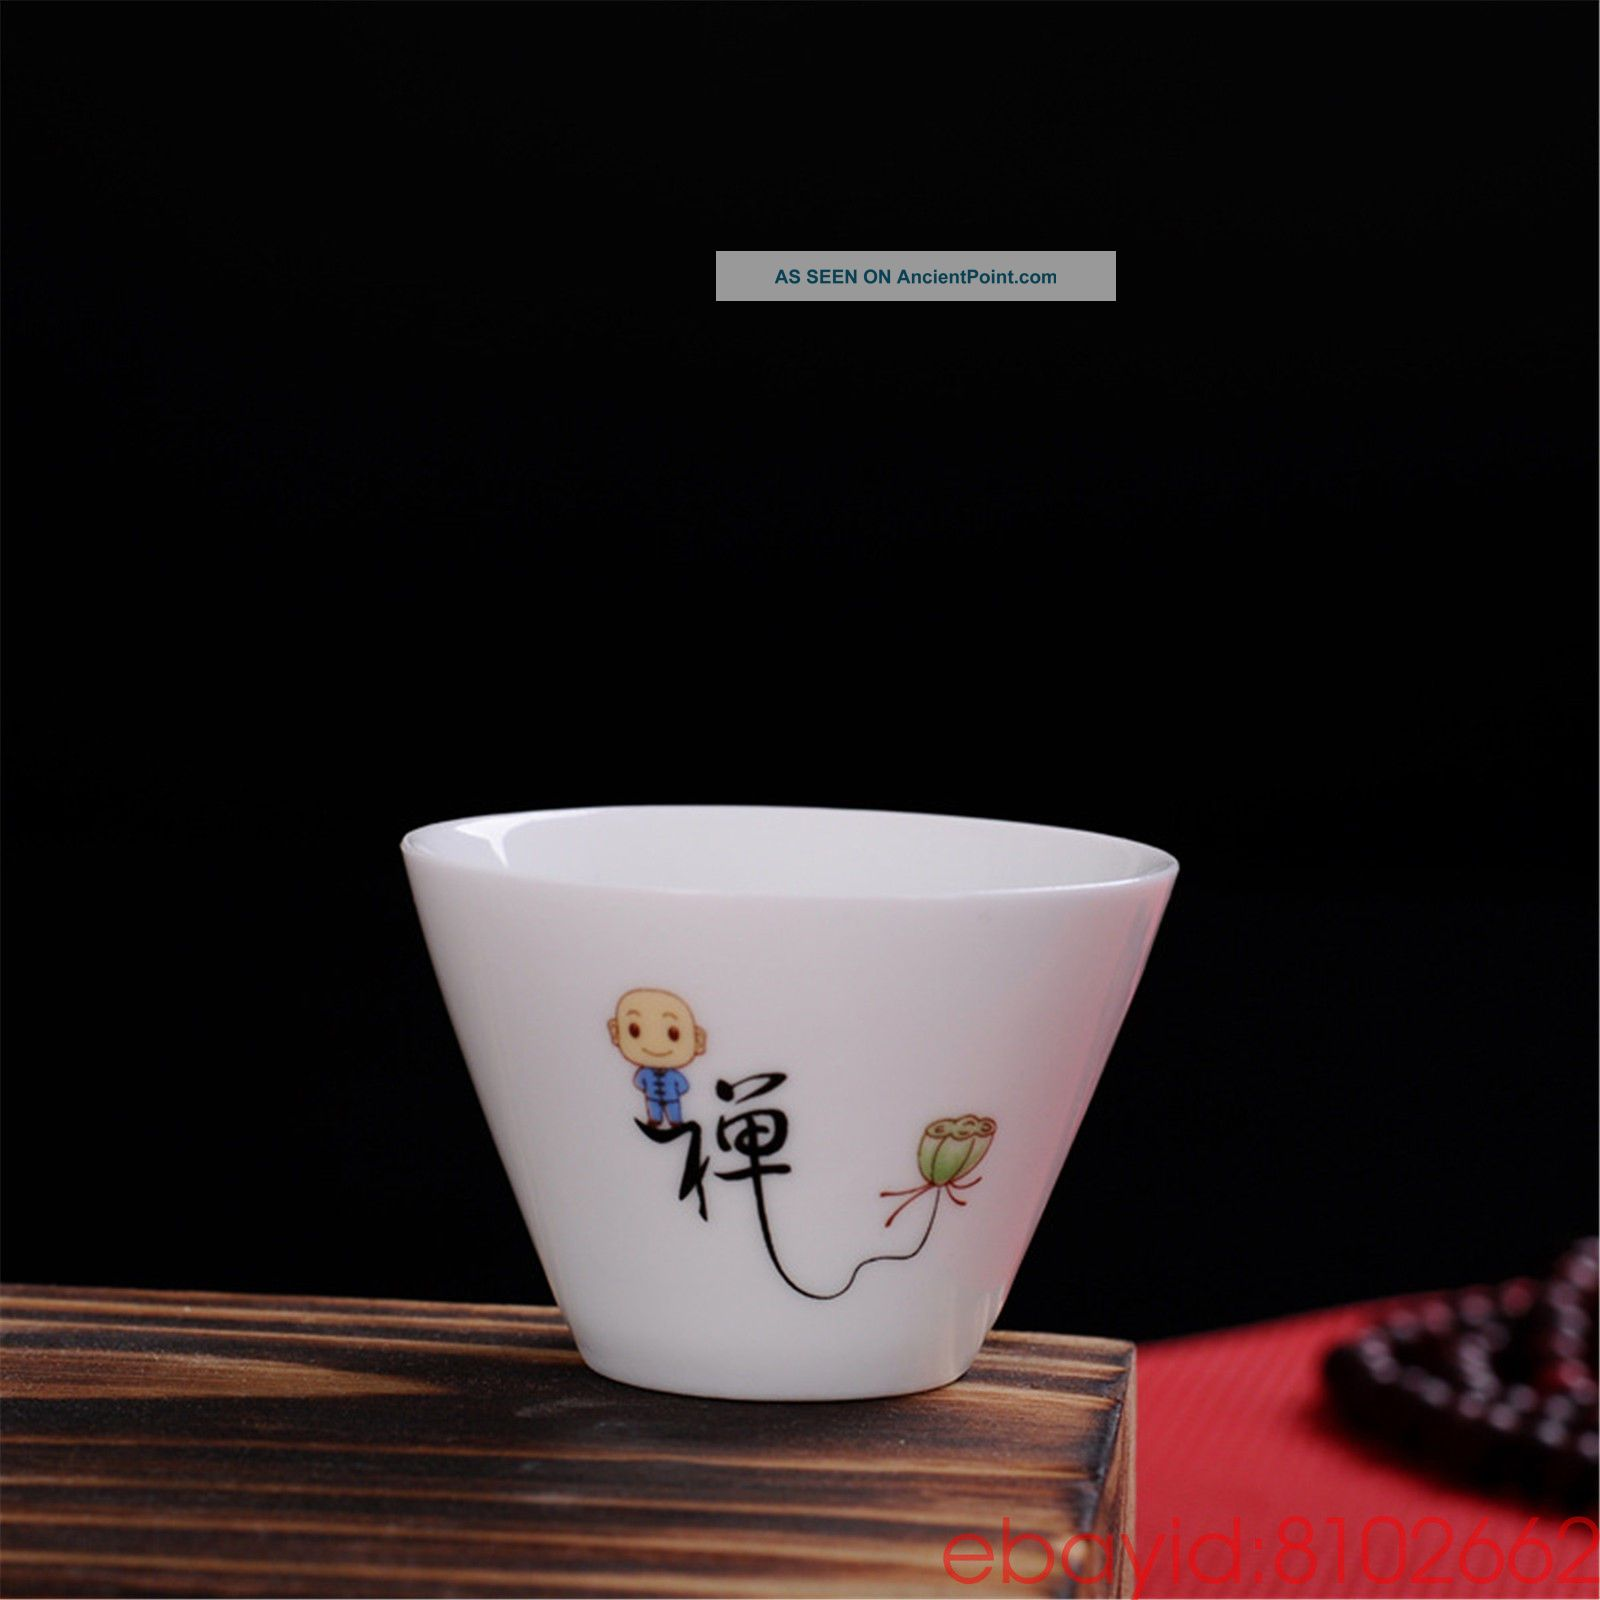 Jingdezhen Small Monk 禅 Blue And White Porcelain Teacup Kung Fu Tea Cup Ceramic Glasses & Cups photo